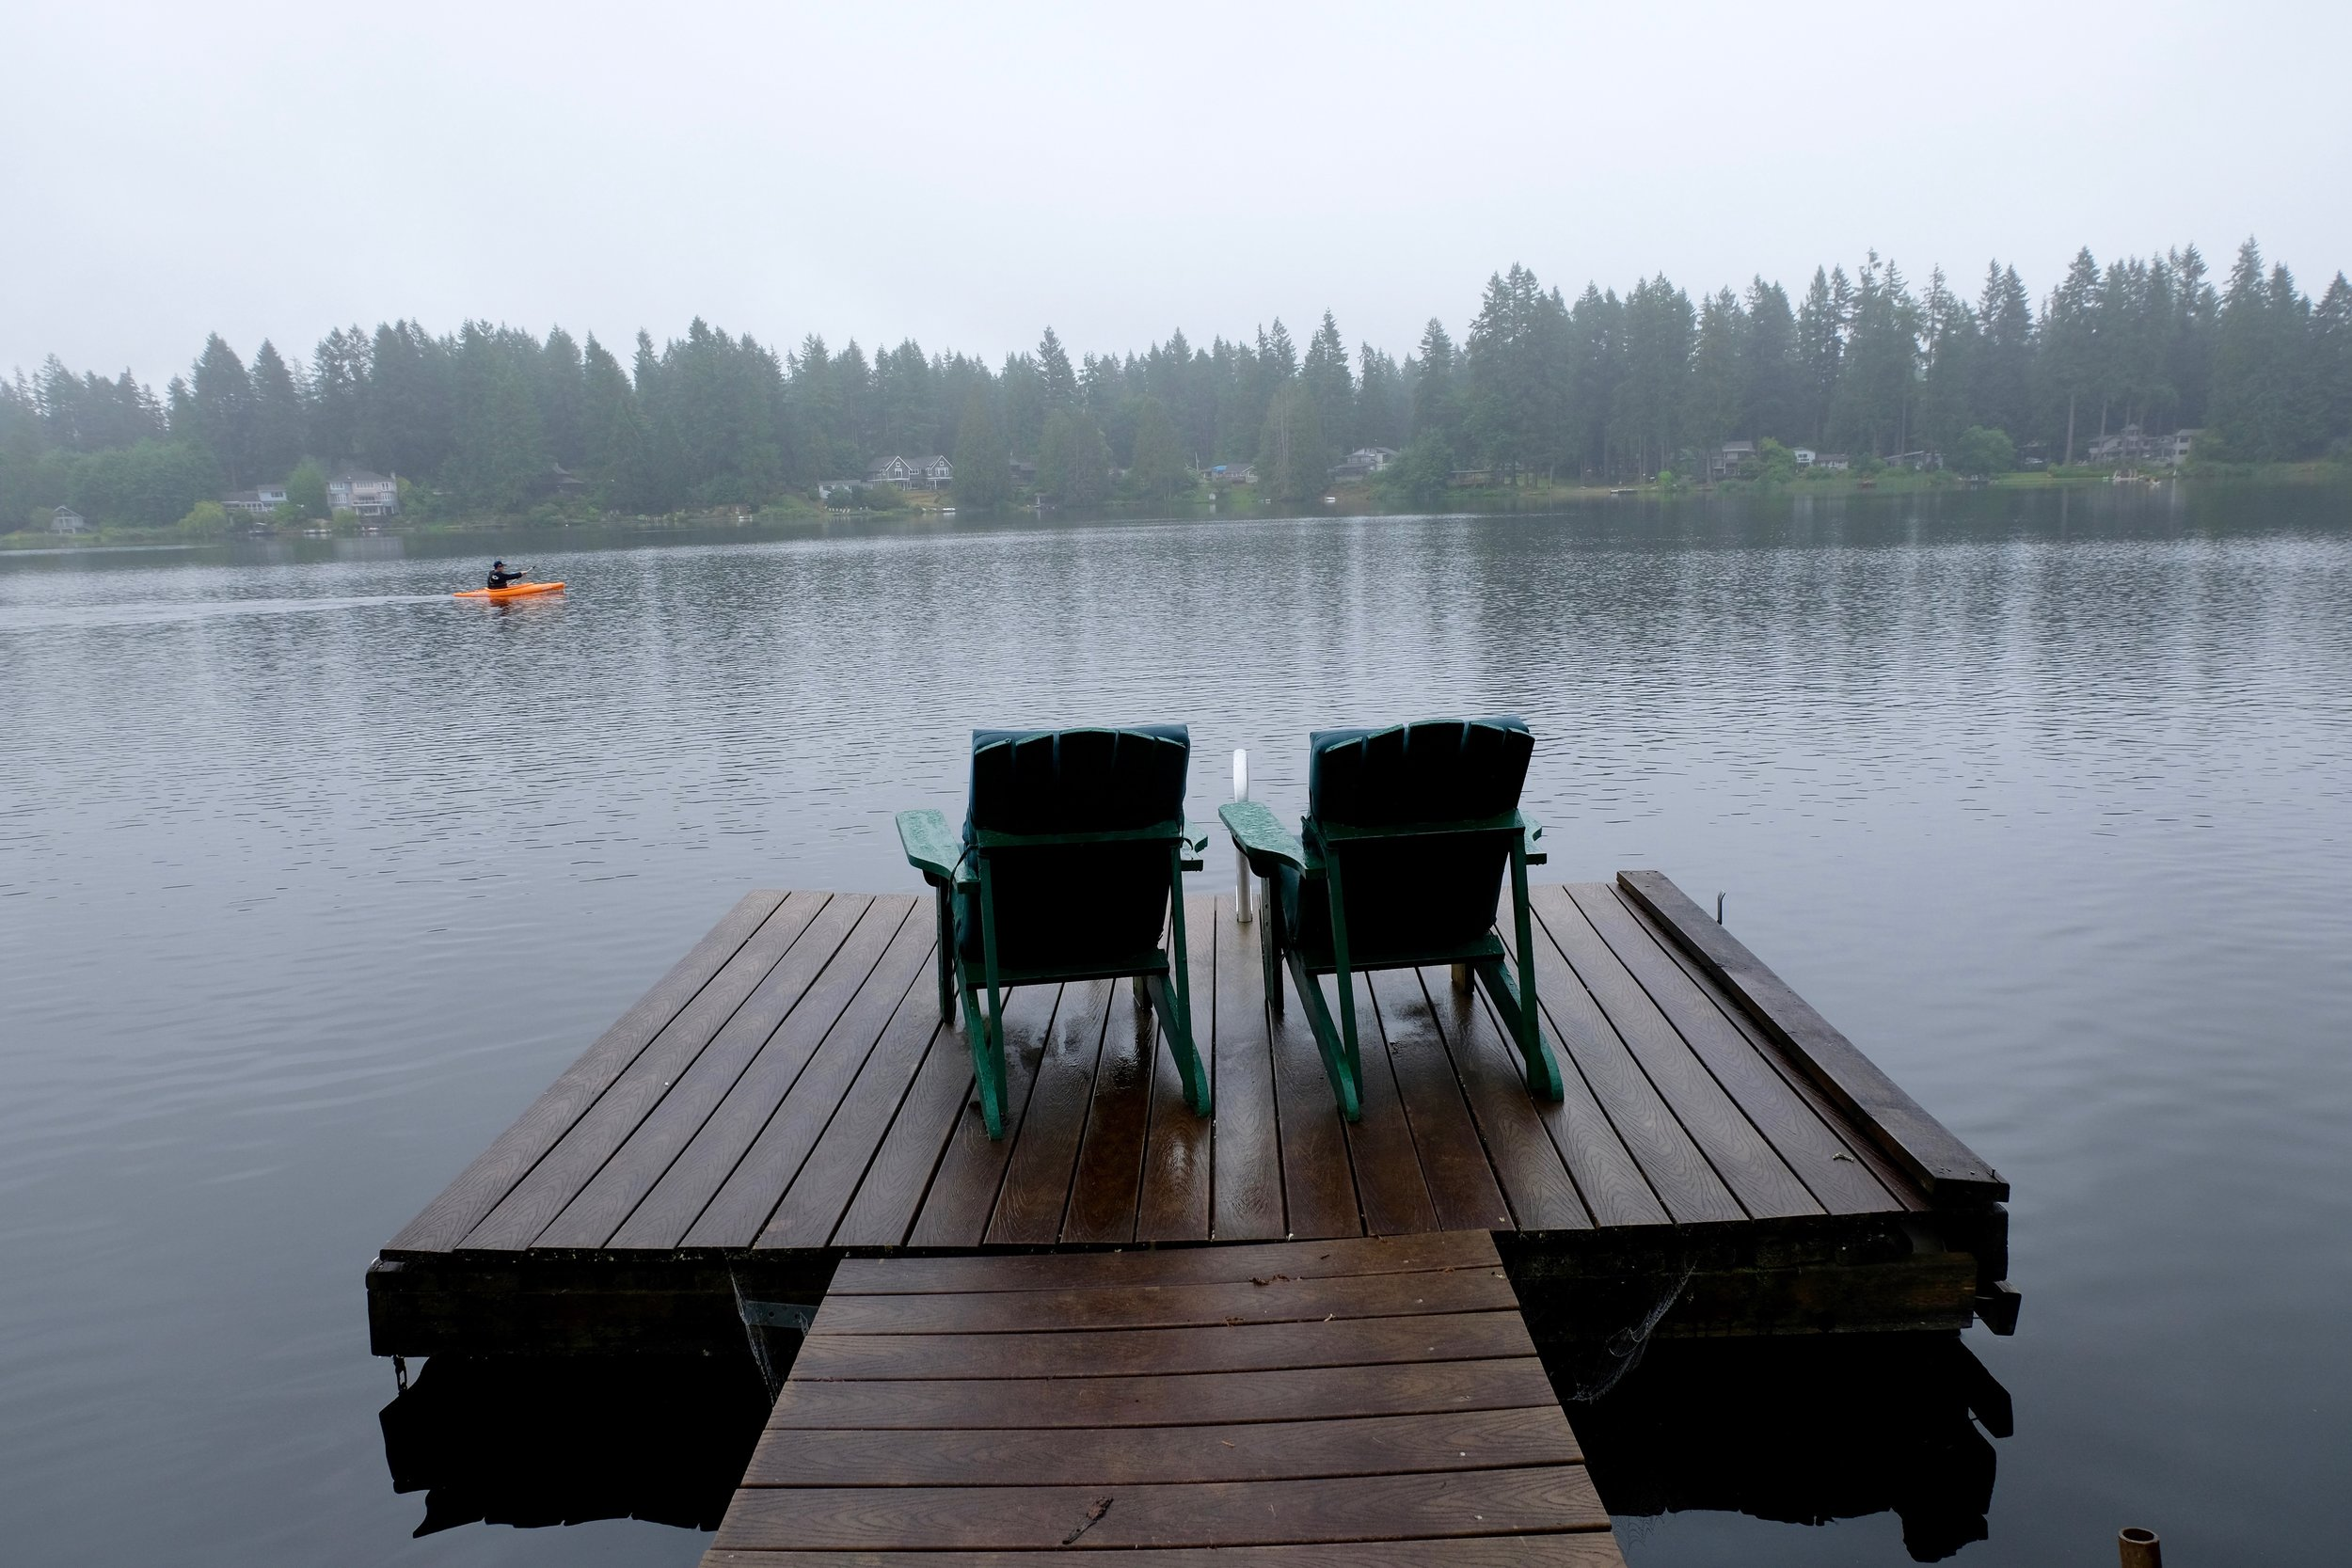 Even on cloudy days it was wonderful to have a dock to enjoy.